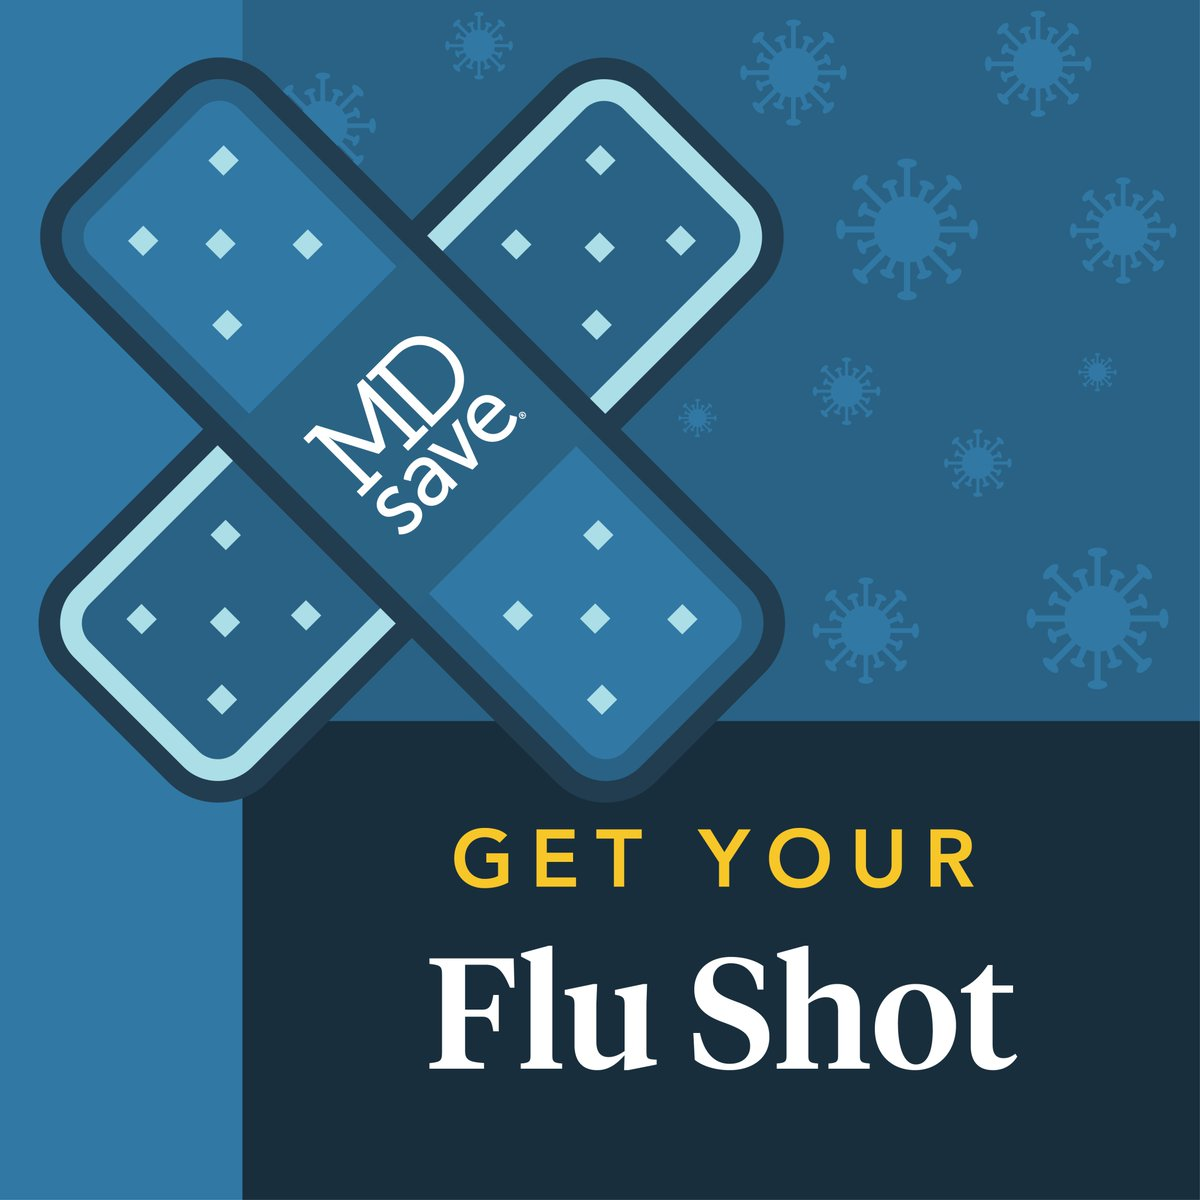 Don't wait - vaccinate! This back-to-school season, getting a flu shot is more important than ever. The flu vaccine helps protect you and your loved ones and can reduce the burden on hospitals and healthcare systems. Find a provider near you today at https://t.co/GqNmy2hmGu. https://t.co/RBS2mHjpqa